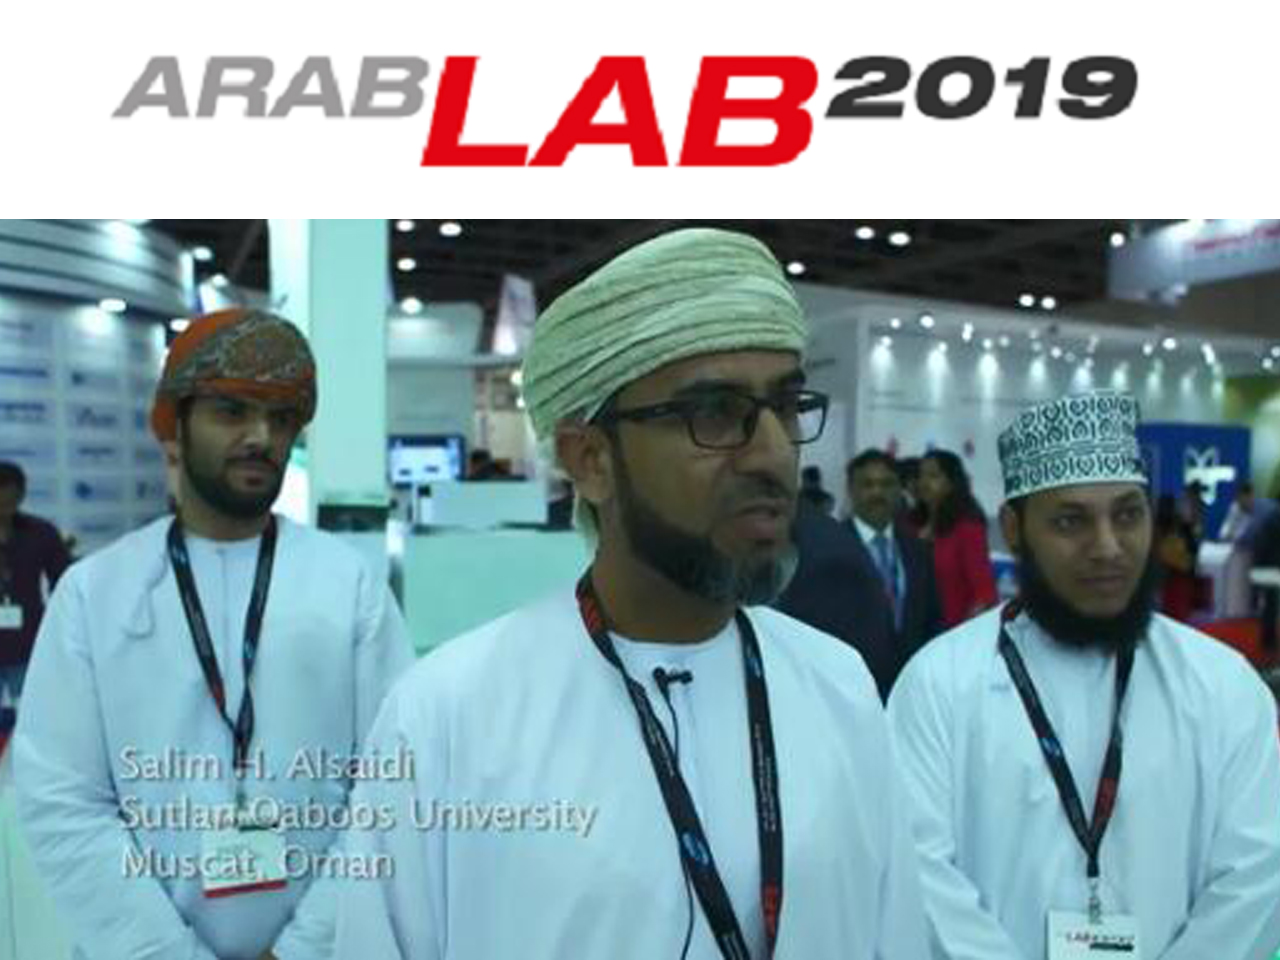 Arab lab 2019 Expo